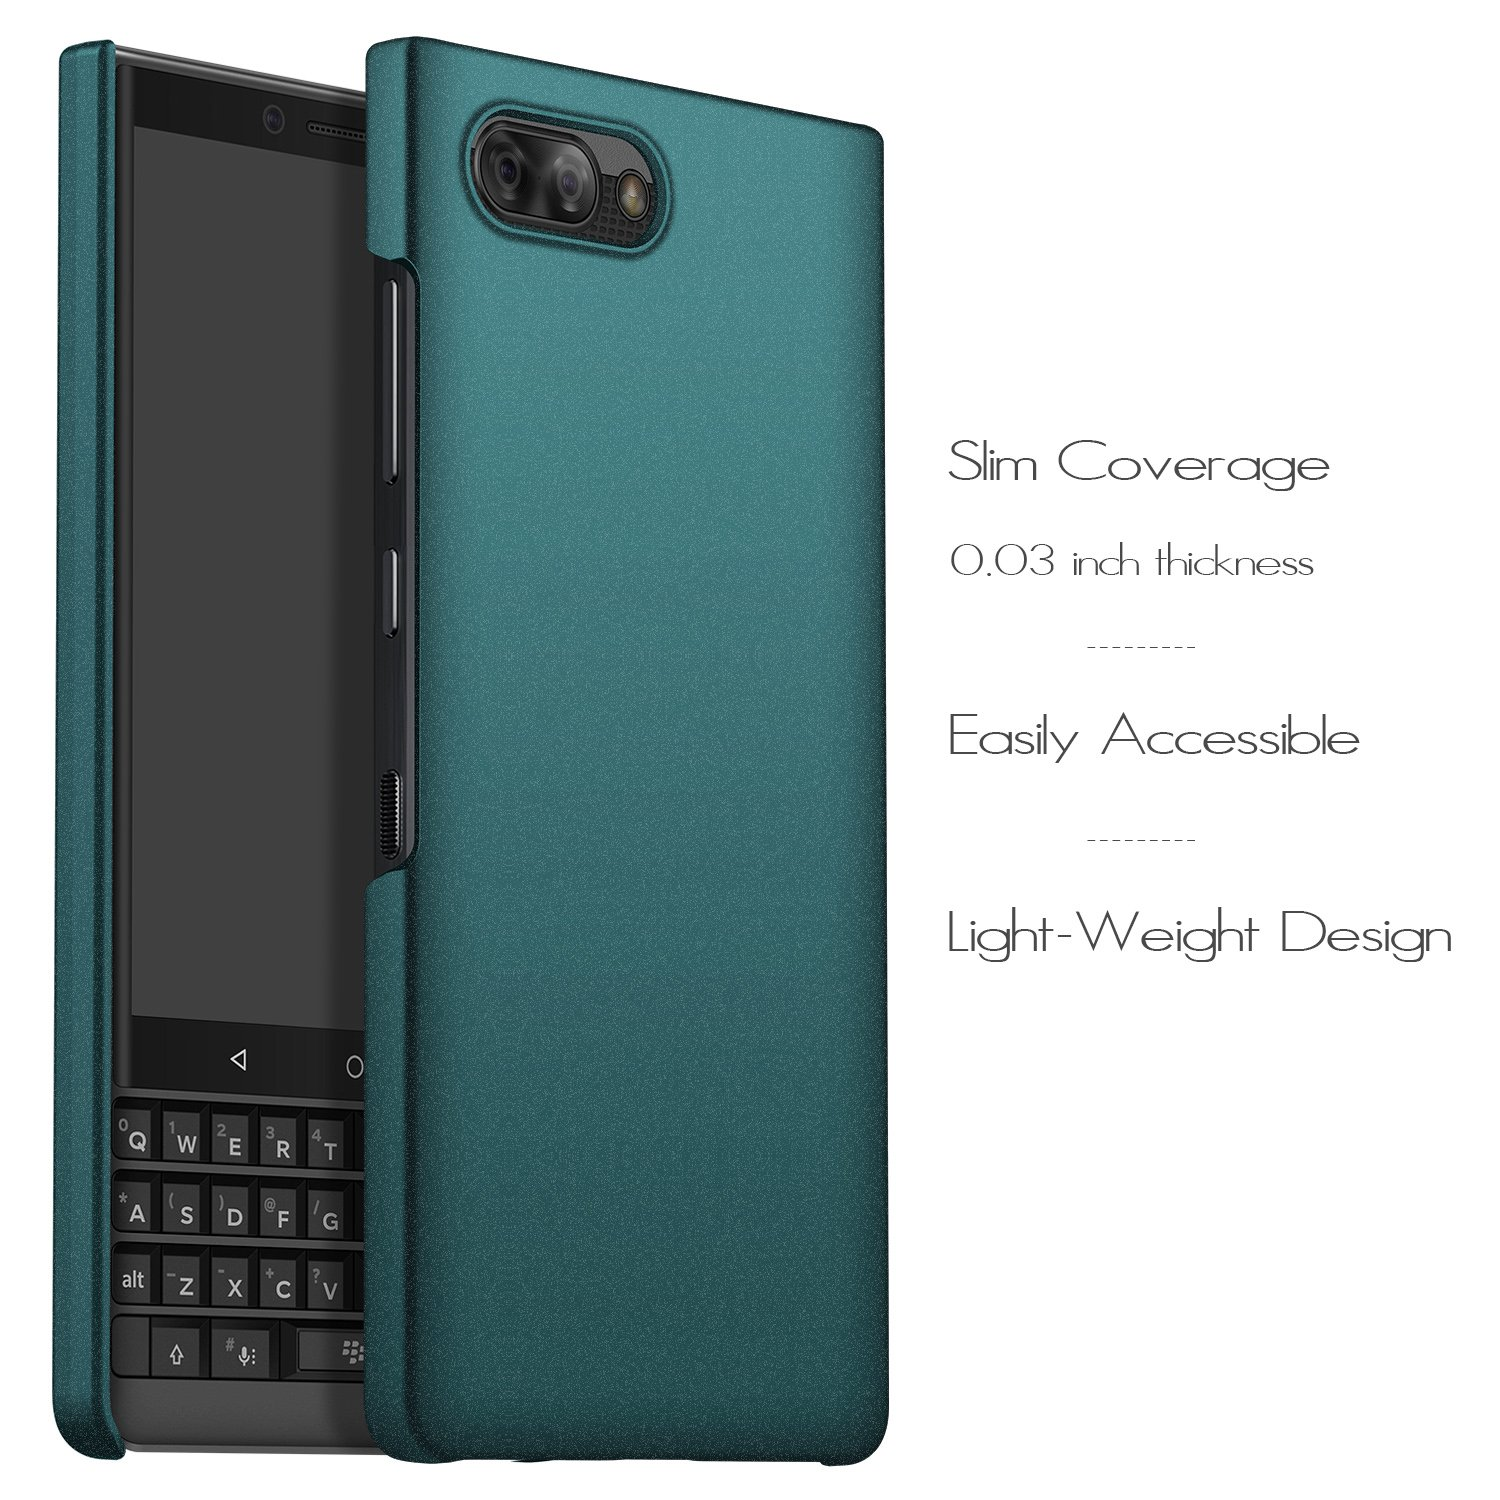 Ultra-Thin - Gravel Black Anccer BlackBerry Key2 Case Premium Material Slim Full Protection Cover for BlackBerry Key2 Colorful Series Not fit for Keyone Anti-Drop